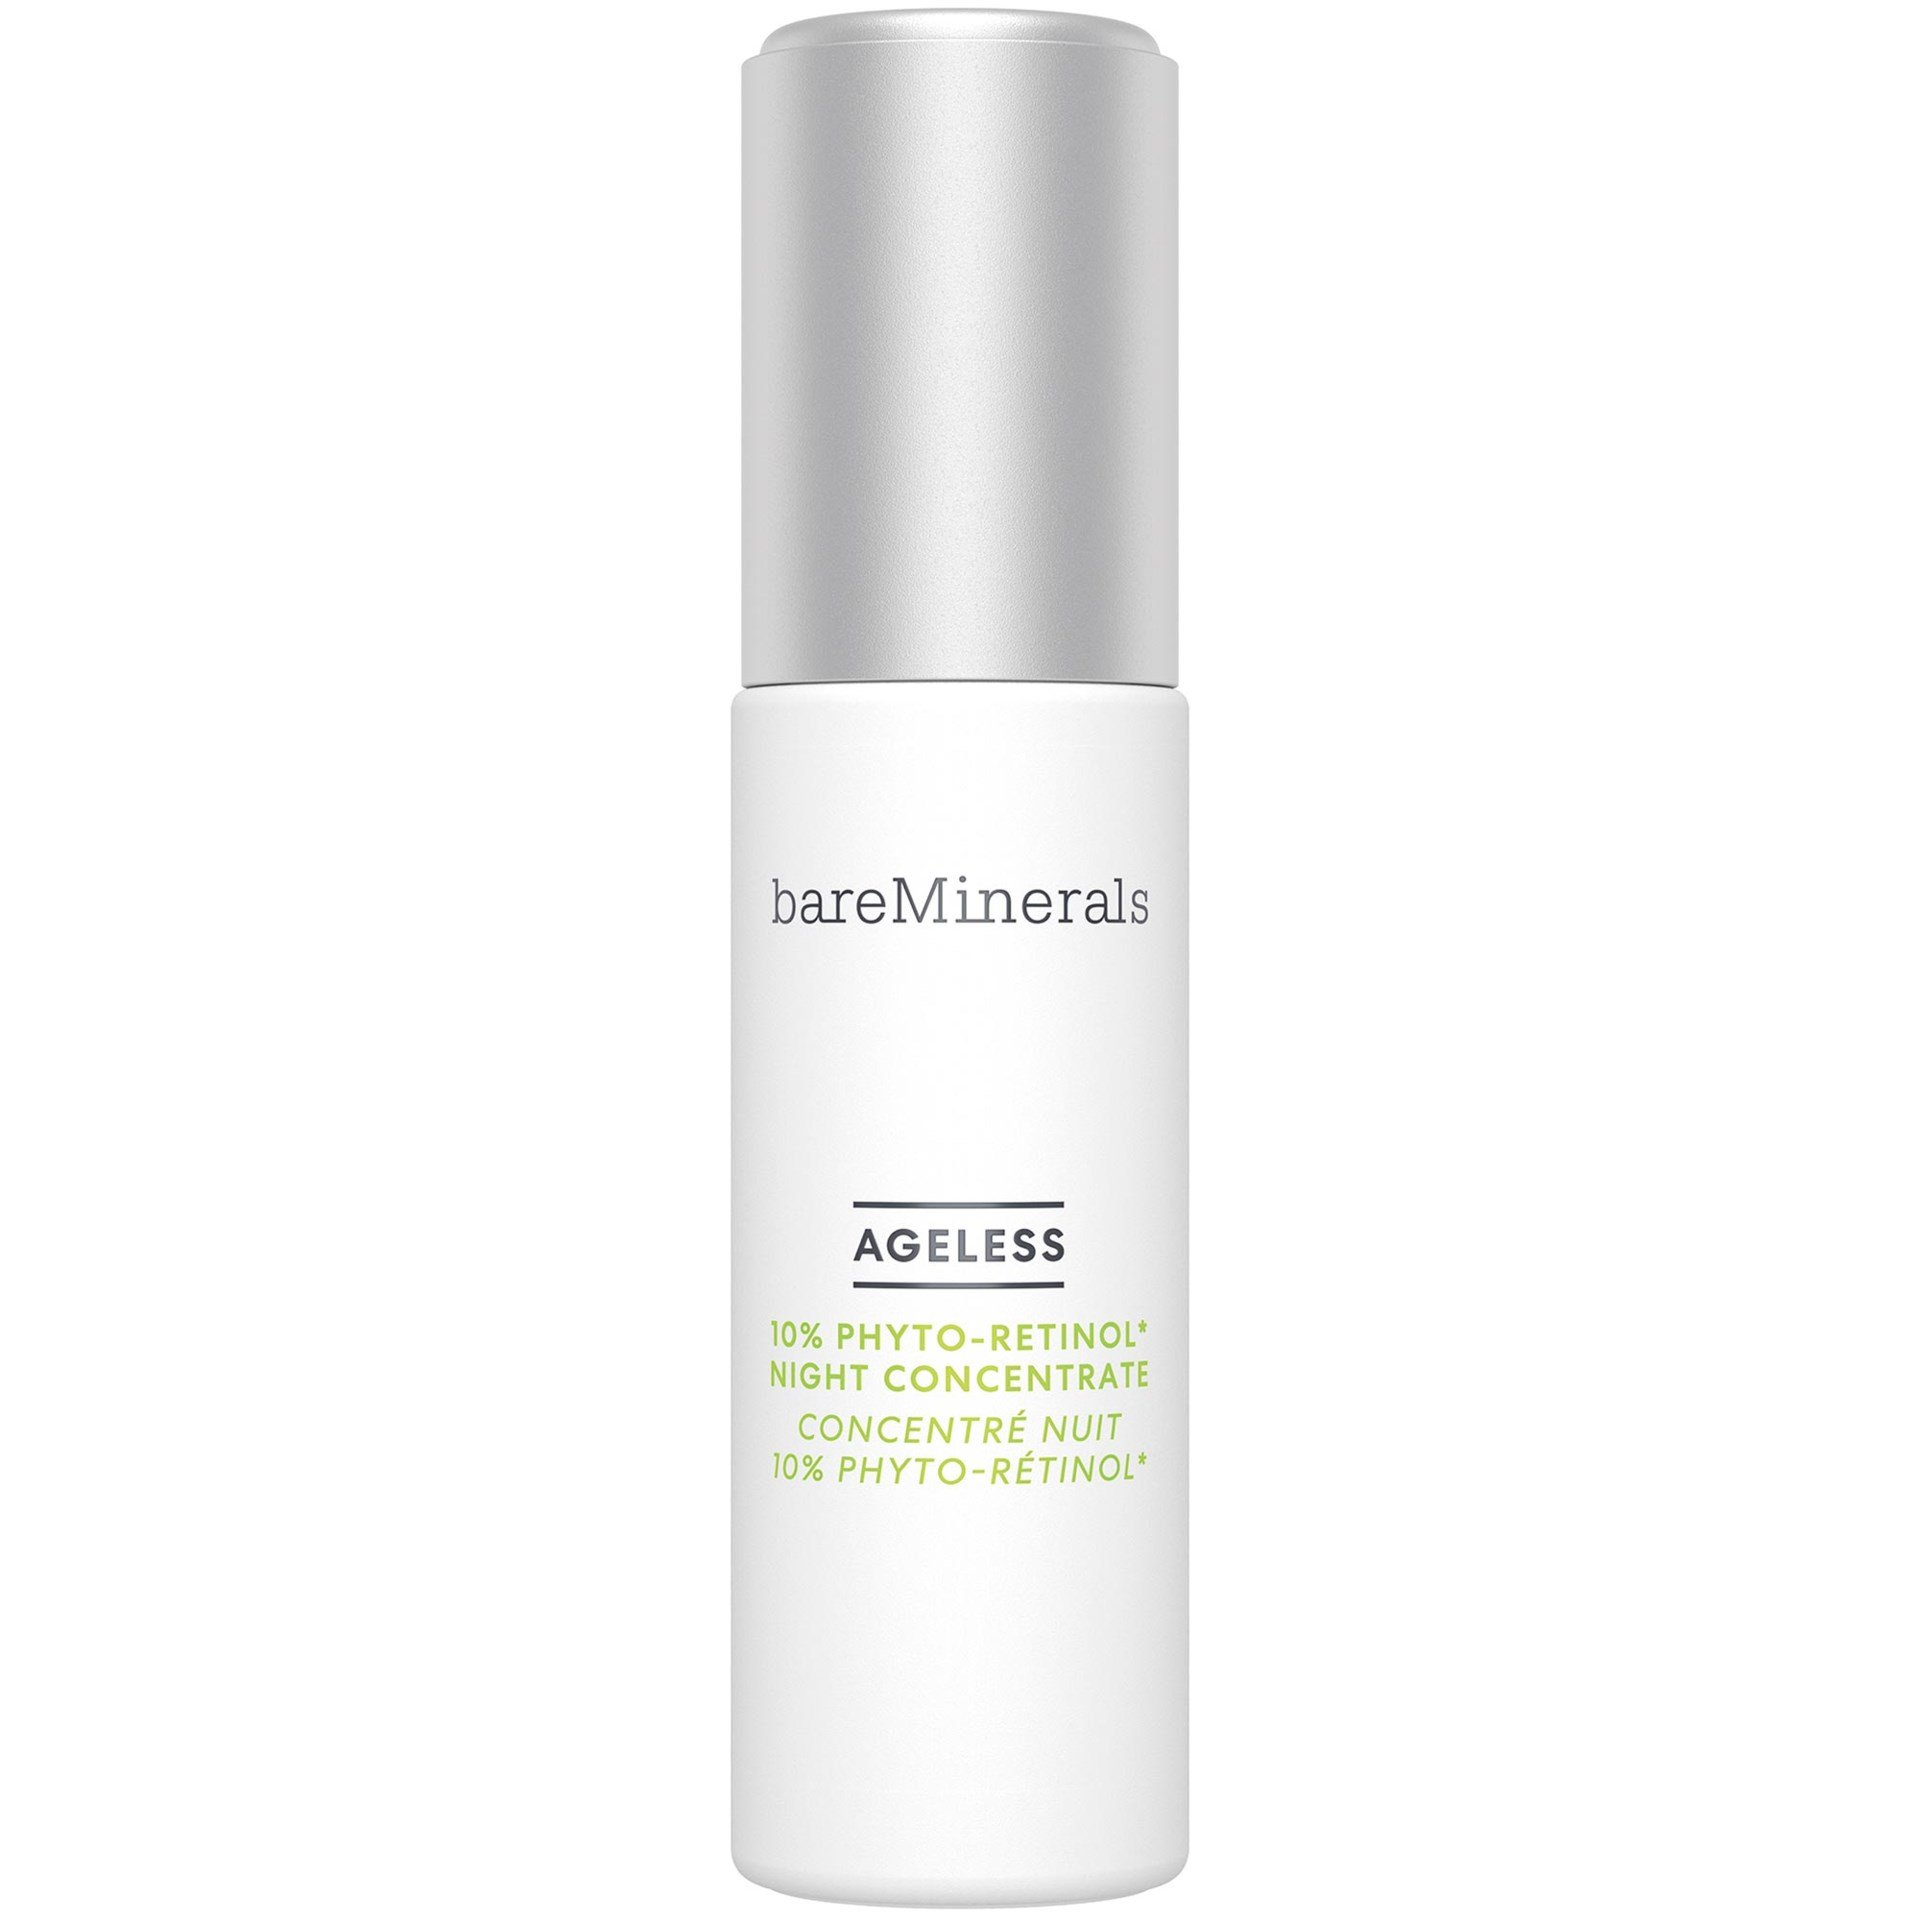 ageless-10-phyto-retinol-night-concentrate